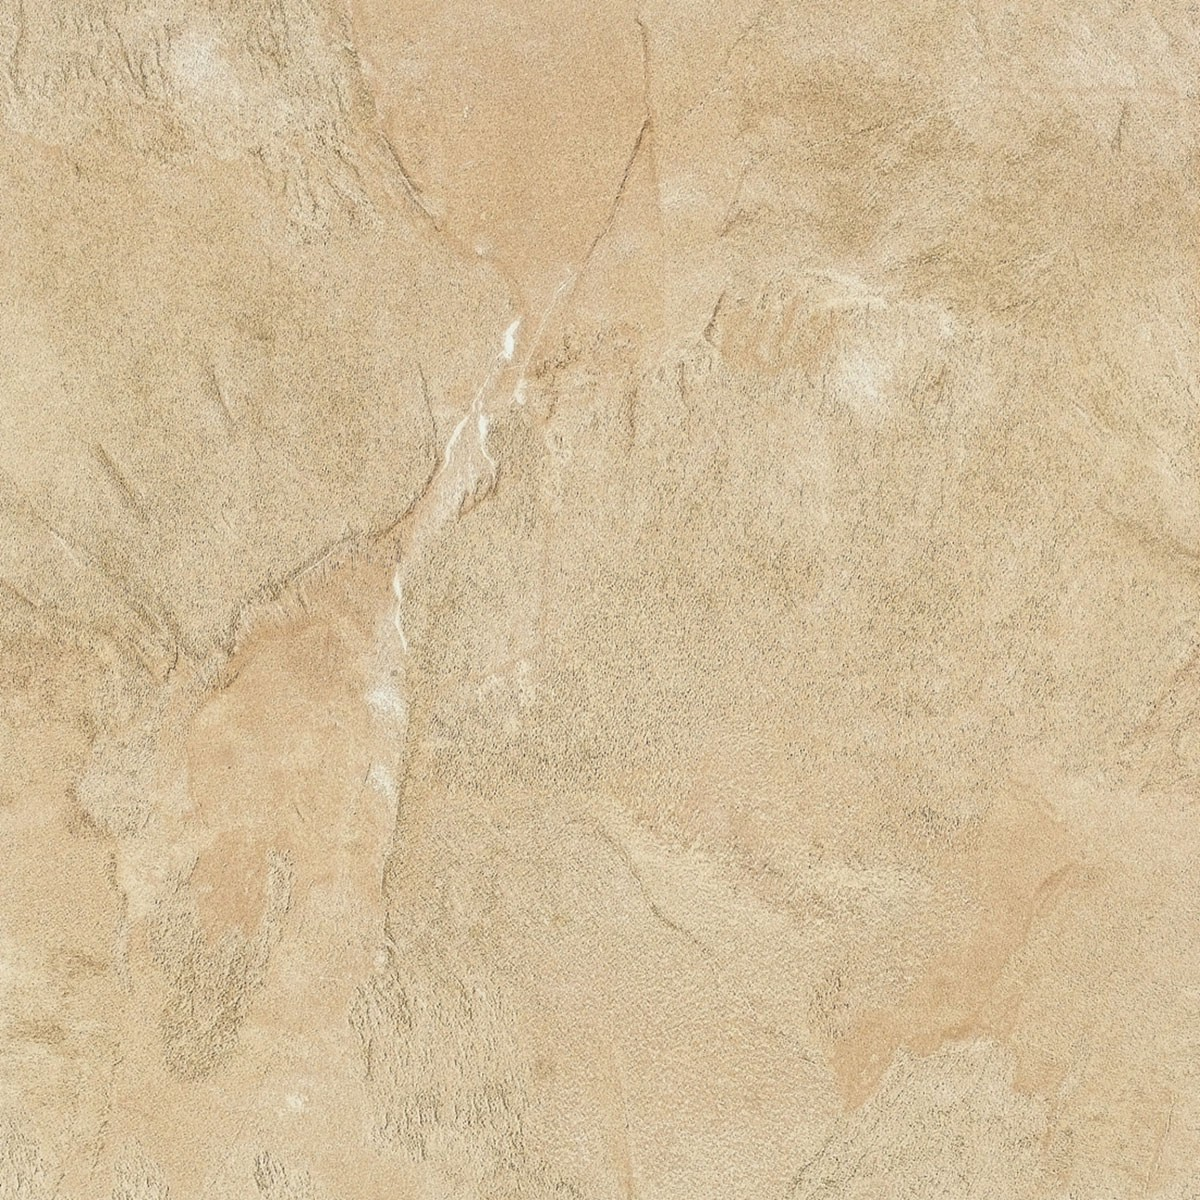 24 x 24 In. Beige Porcelain Floor Tile - 4 Pcs/Case (15.50 sq.ft/Case) (MO60A-1)